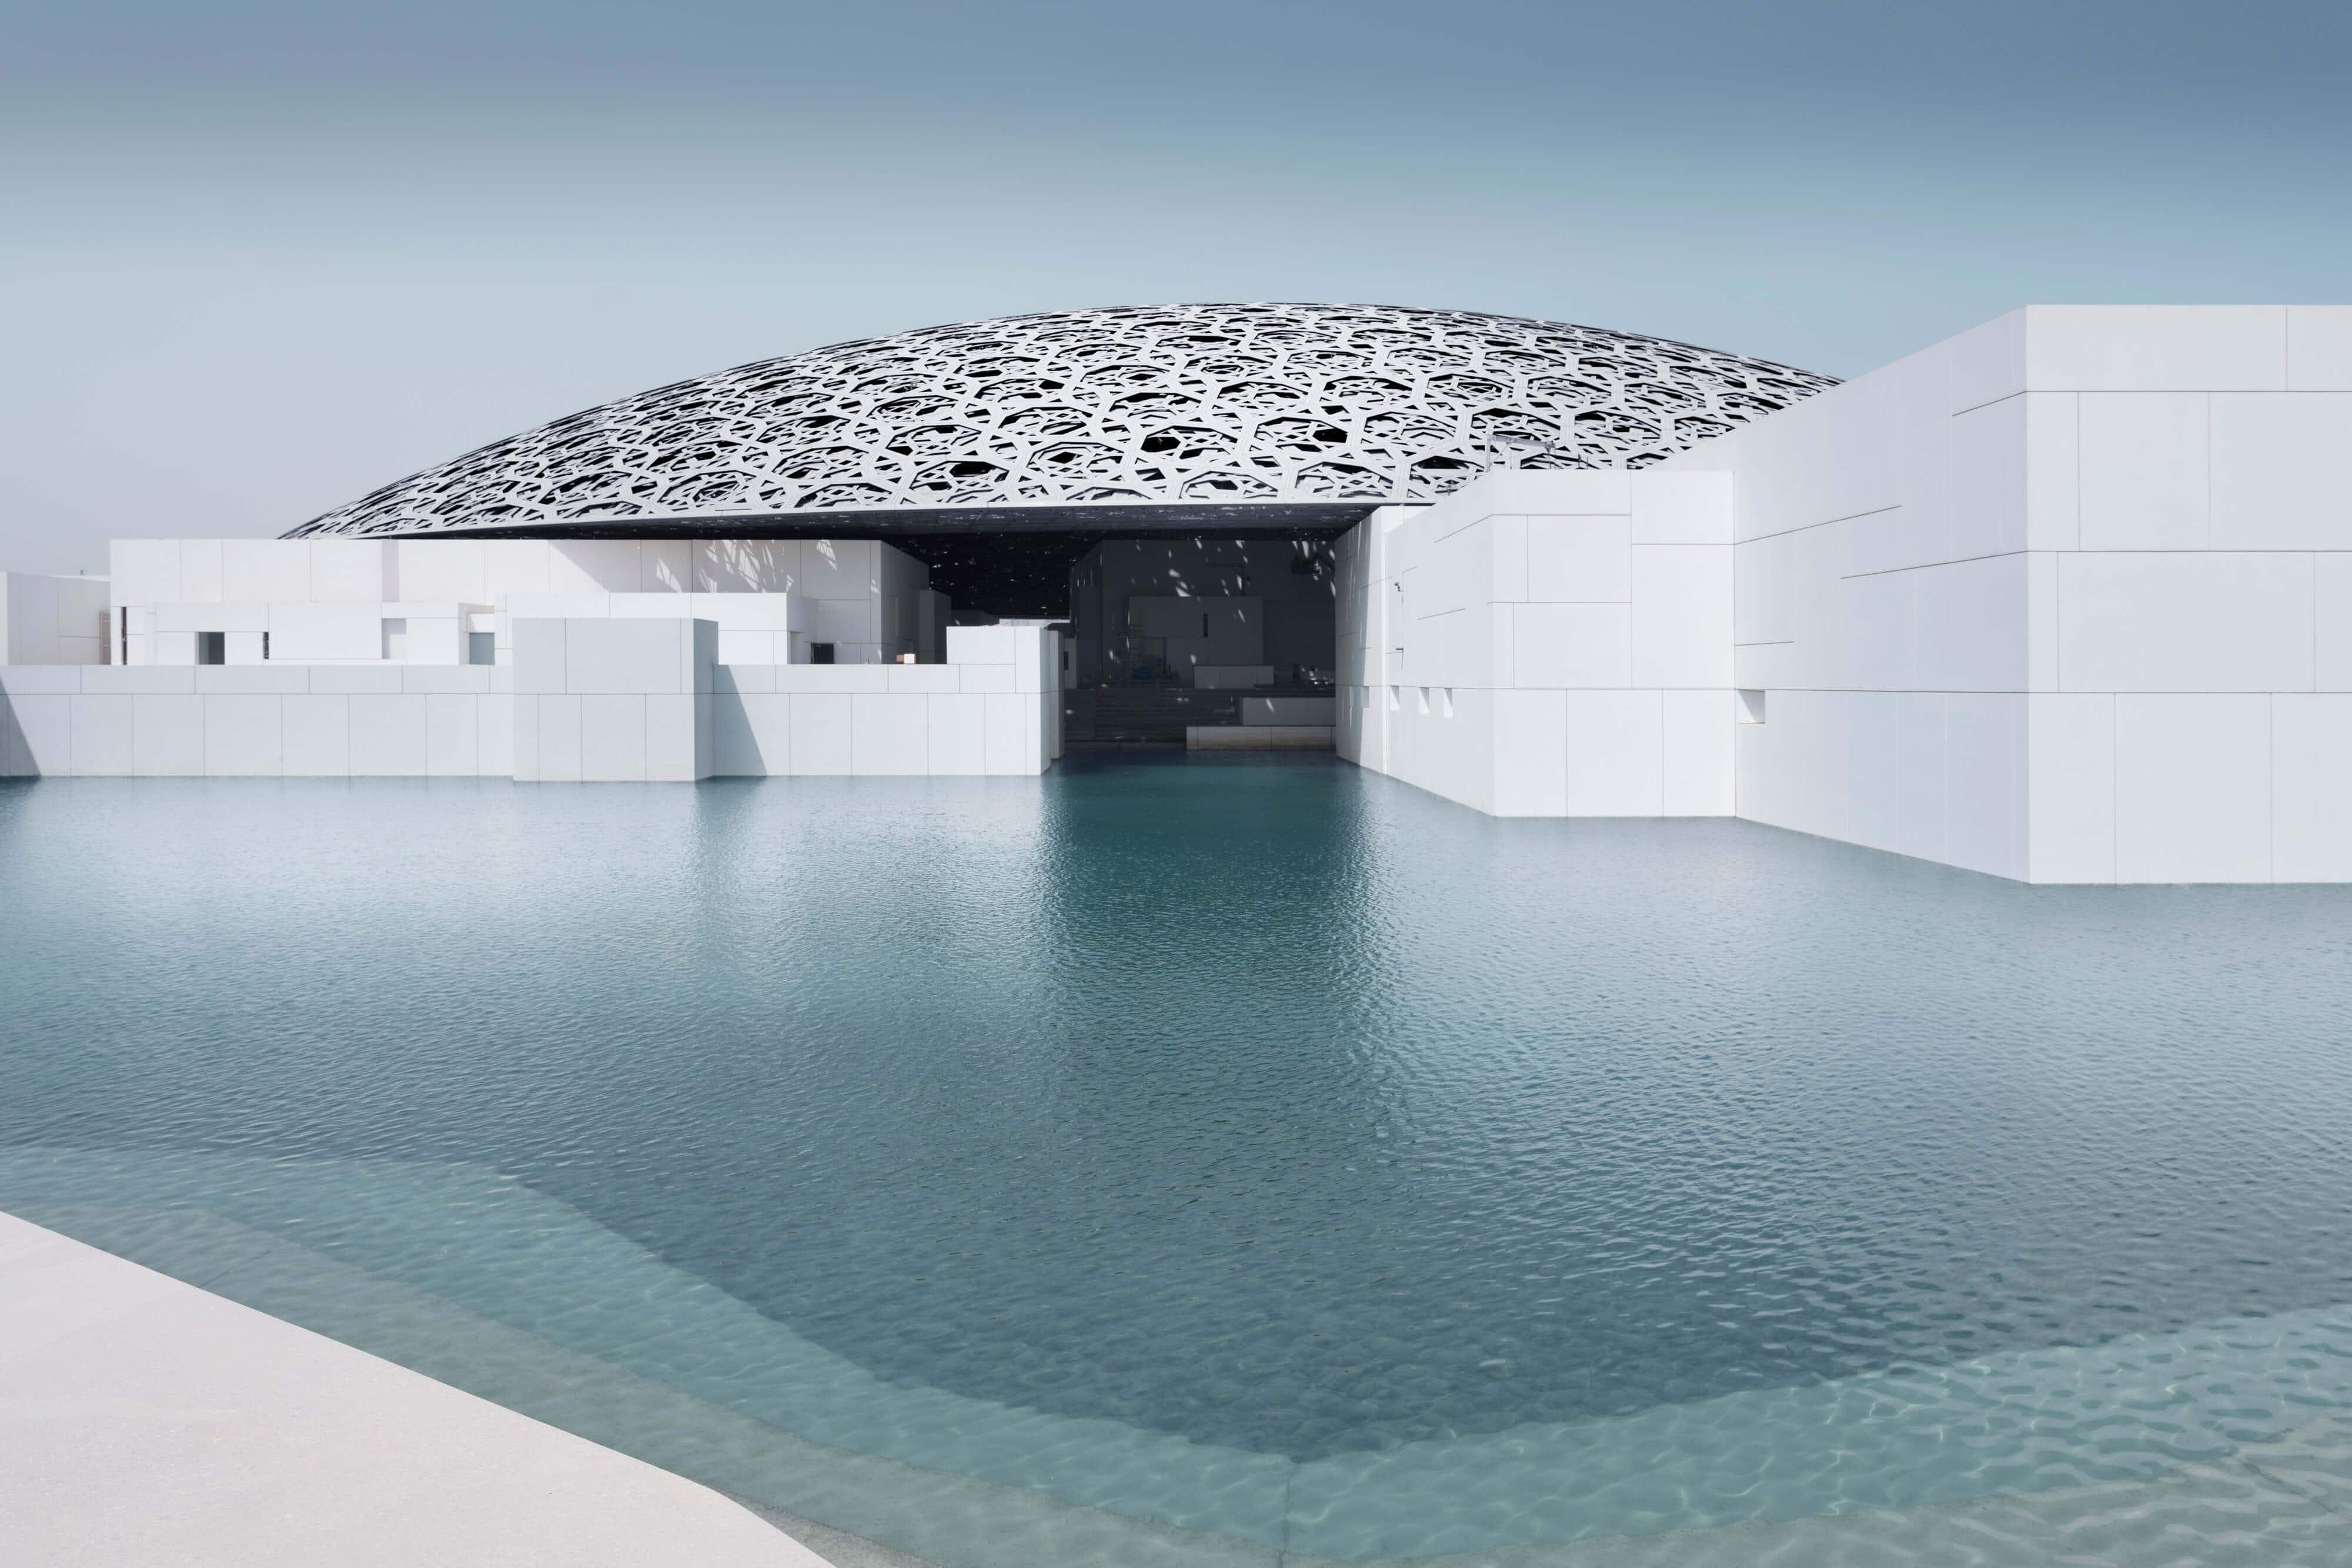 It's official: Louvre Abu Dhabi will finally open this November